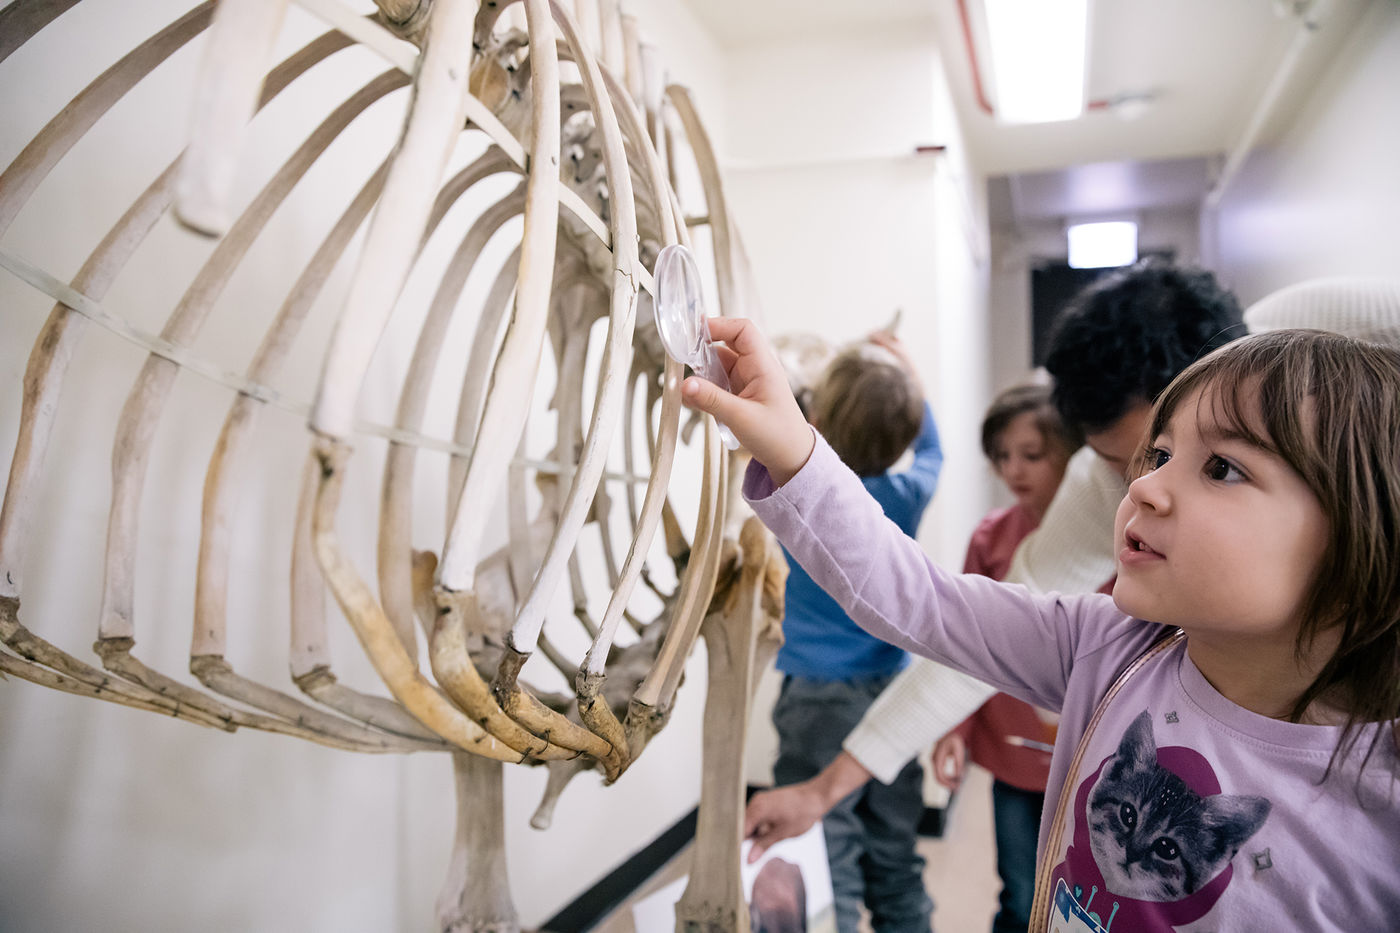 A young girl reaches out to touch a mounted skeleton. Other kids in the background also gather around the skeleton.